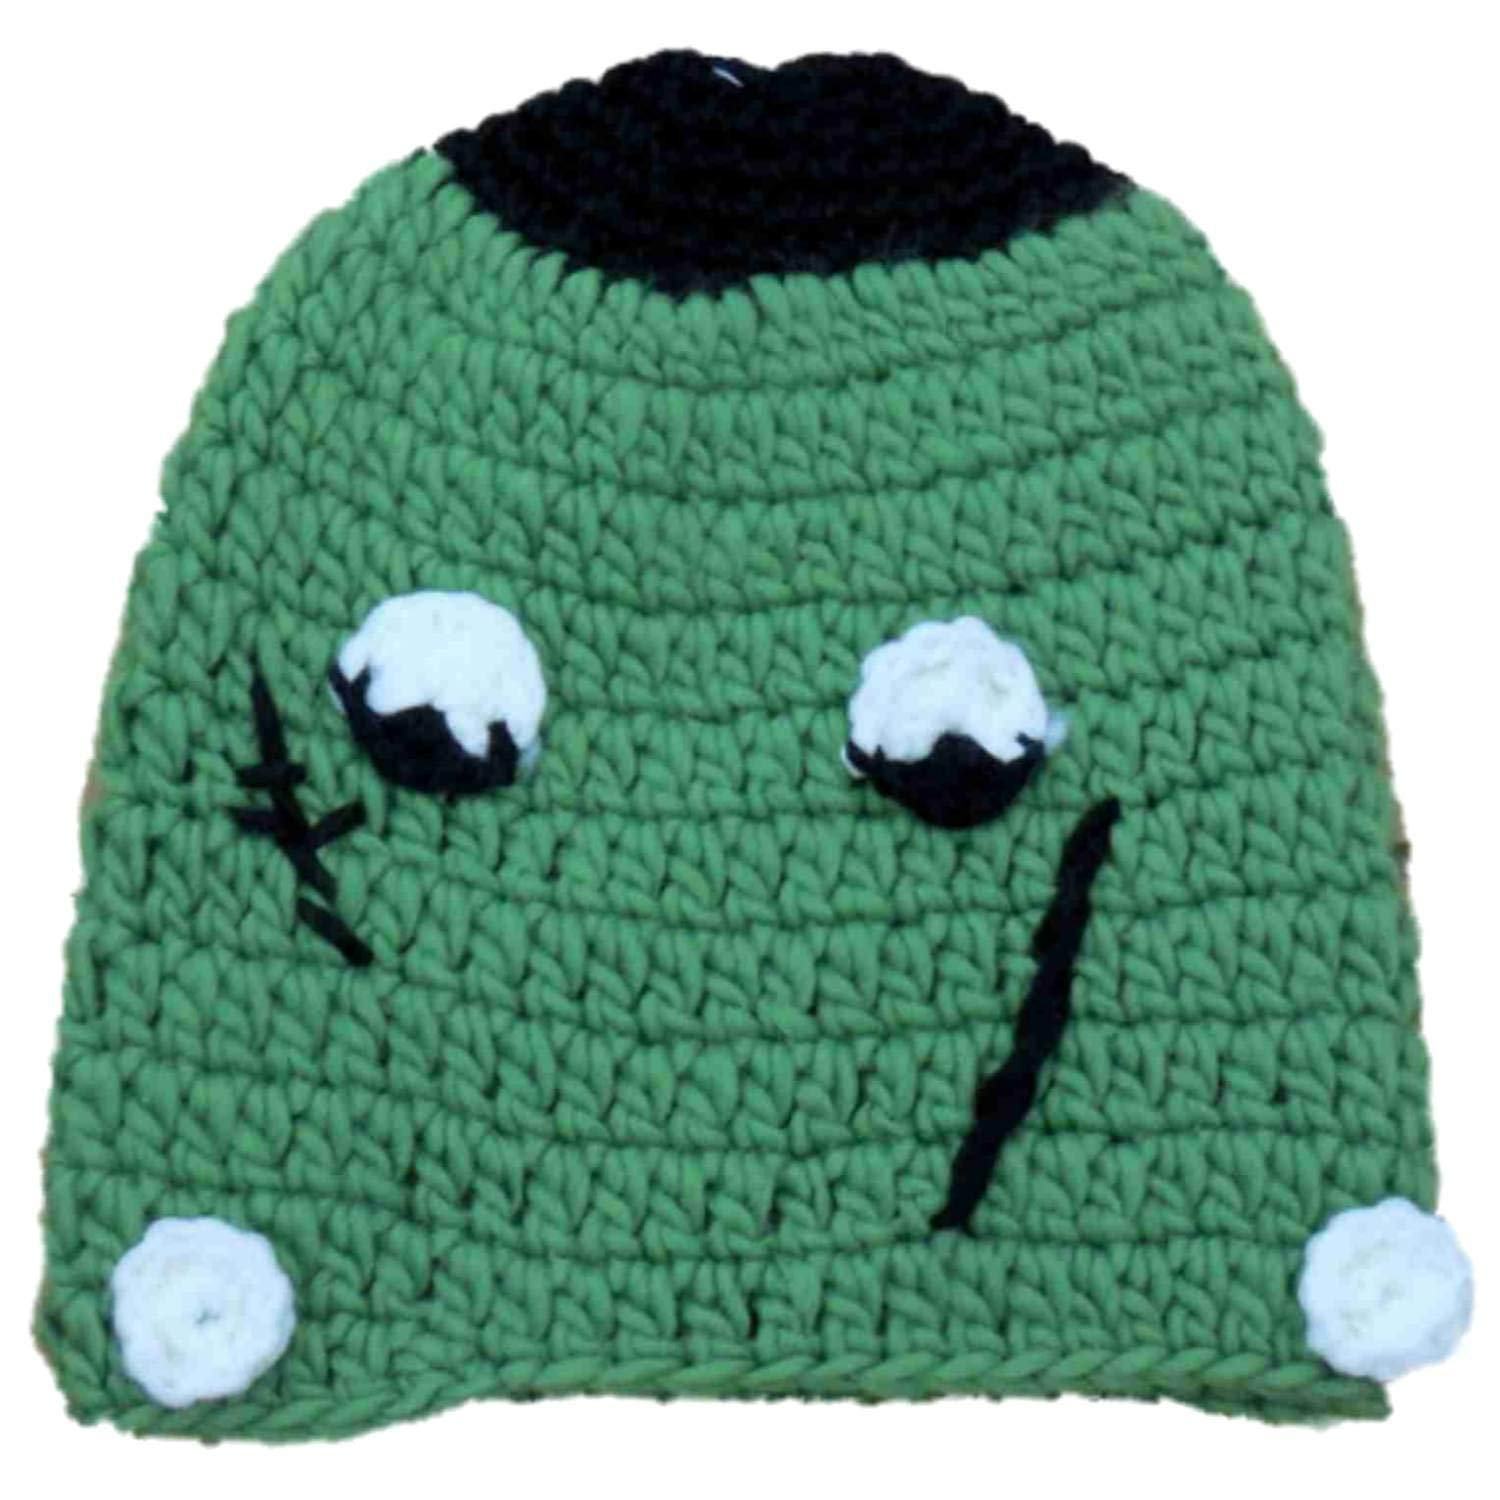 5665c02947c94 Get Quotations · Halloween Womens Green Frankenstein Lumpy Knit Beanie